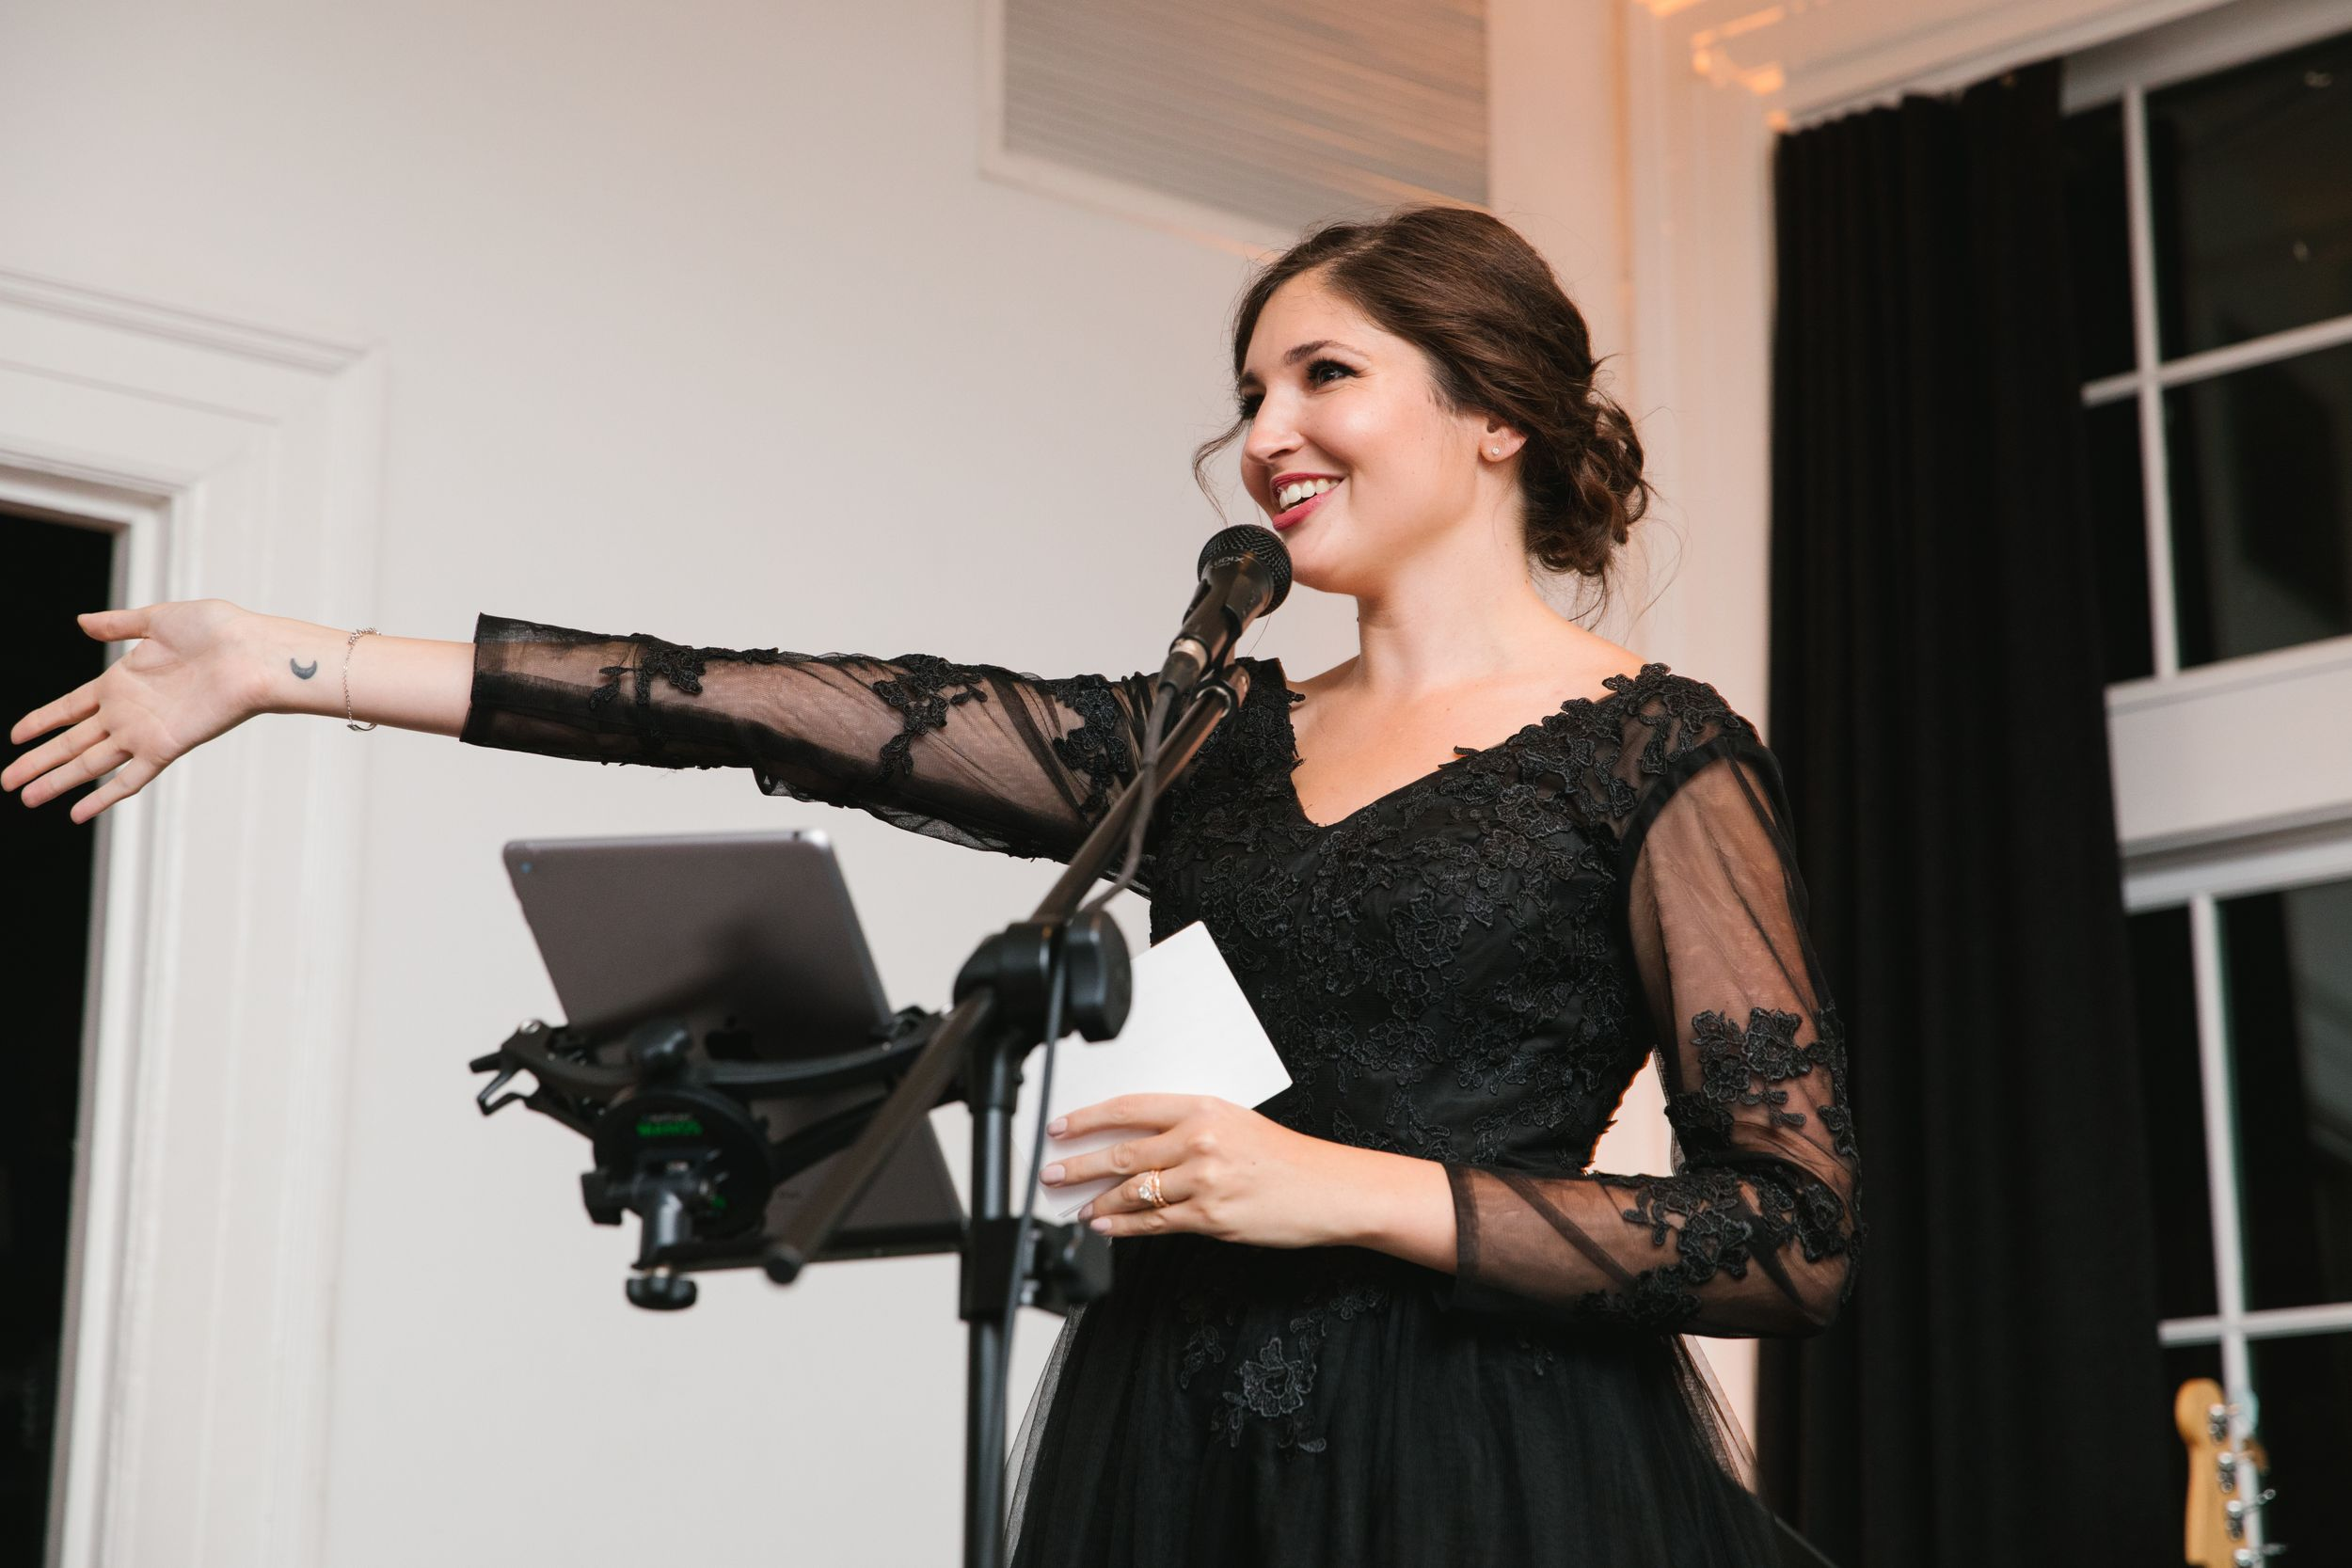 maid of honour in black dress making speech and pointing at bride and groom